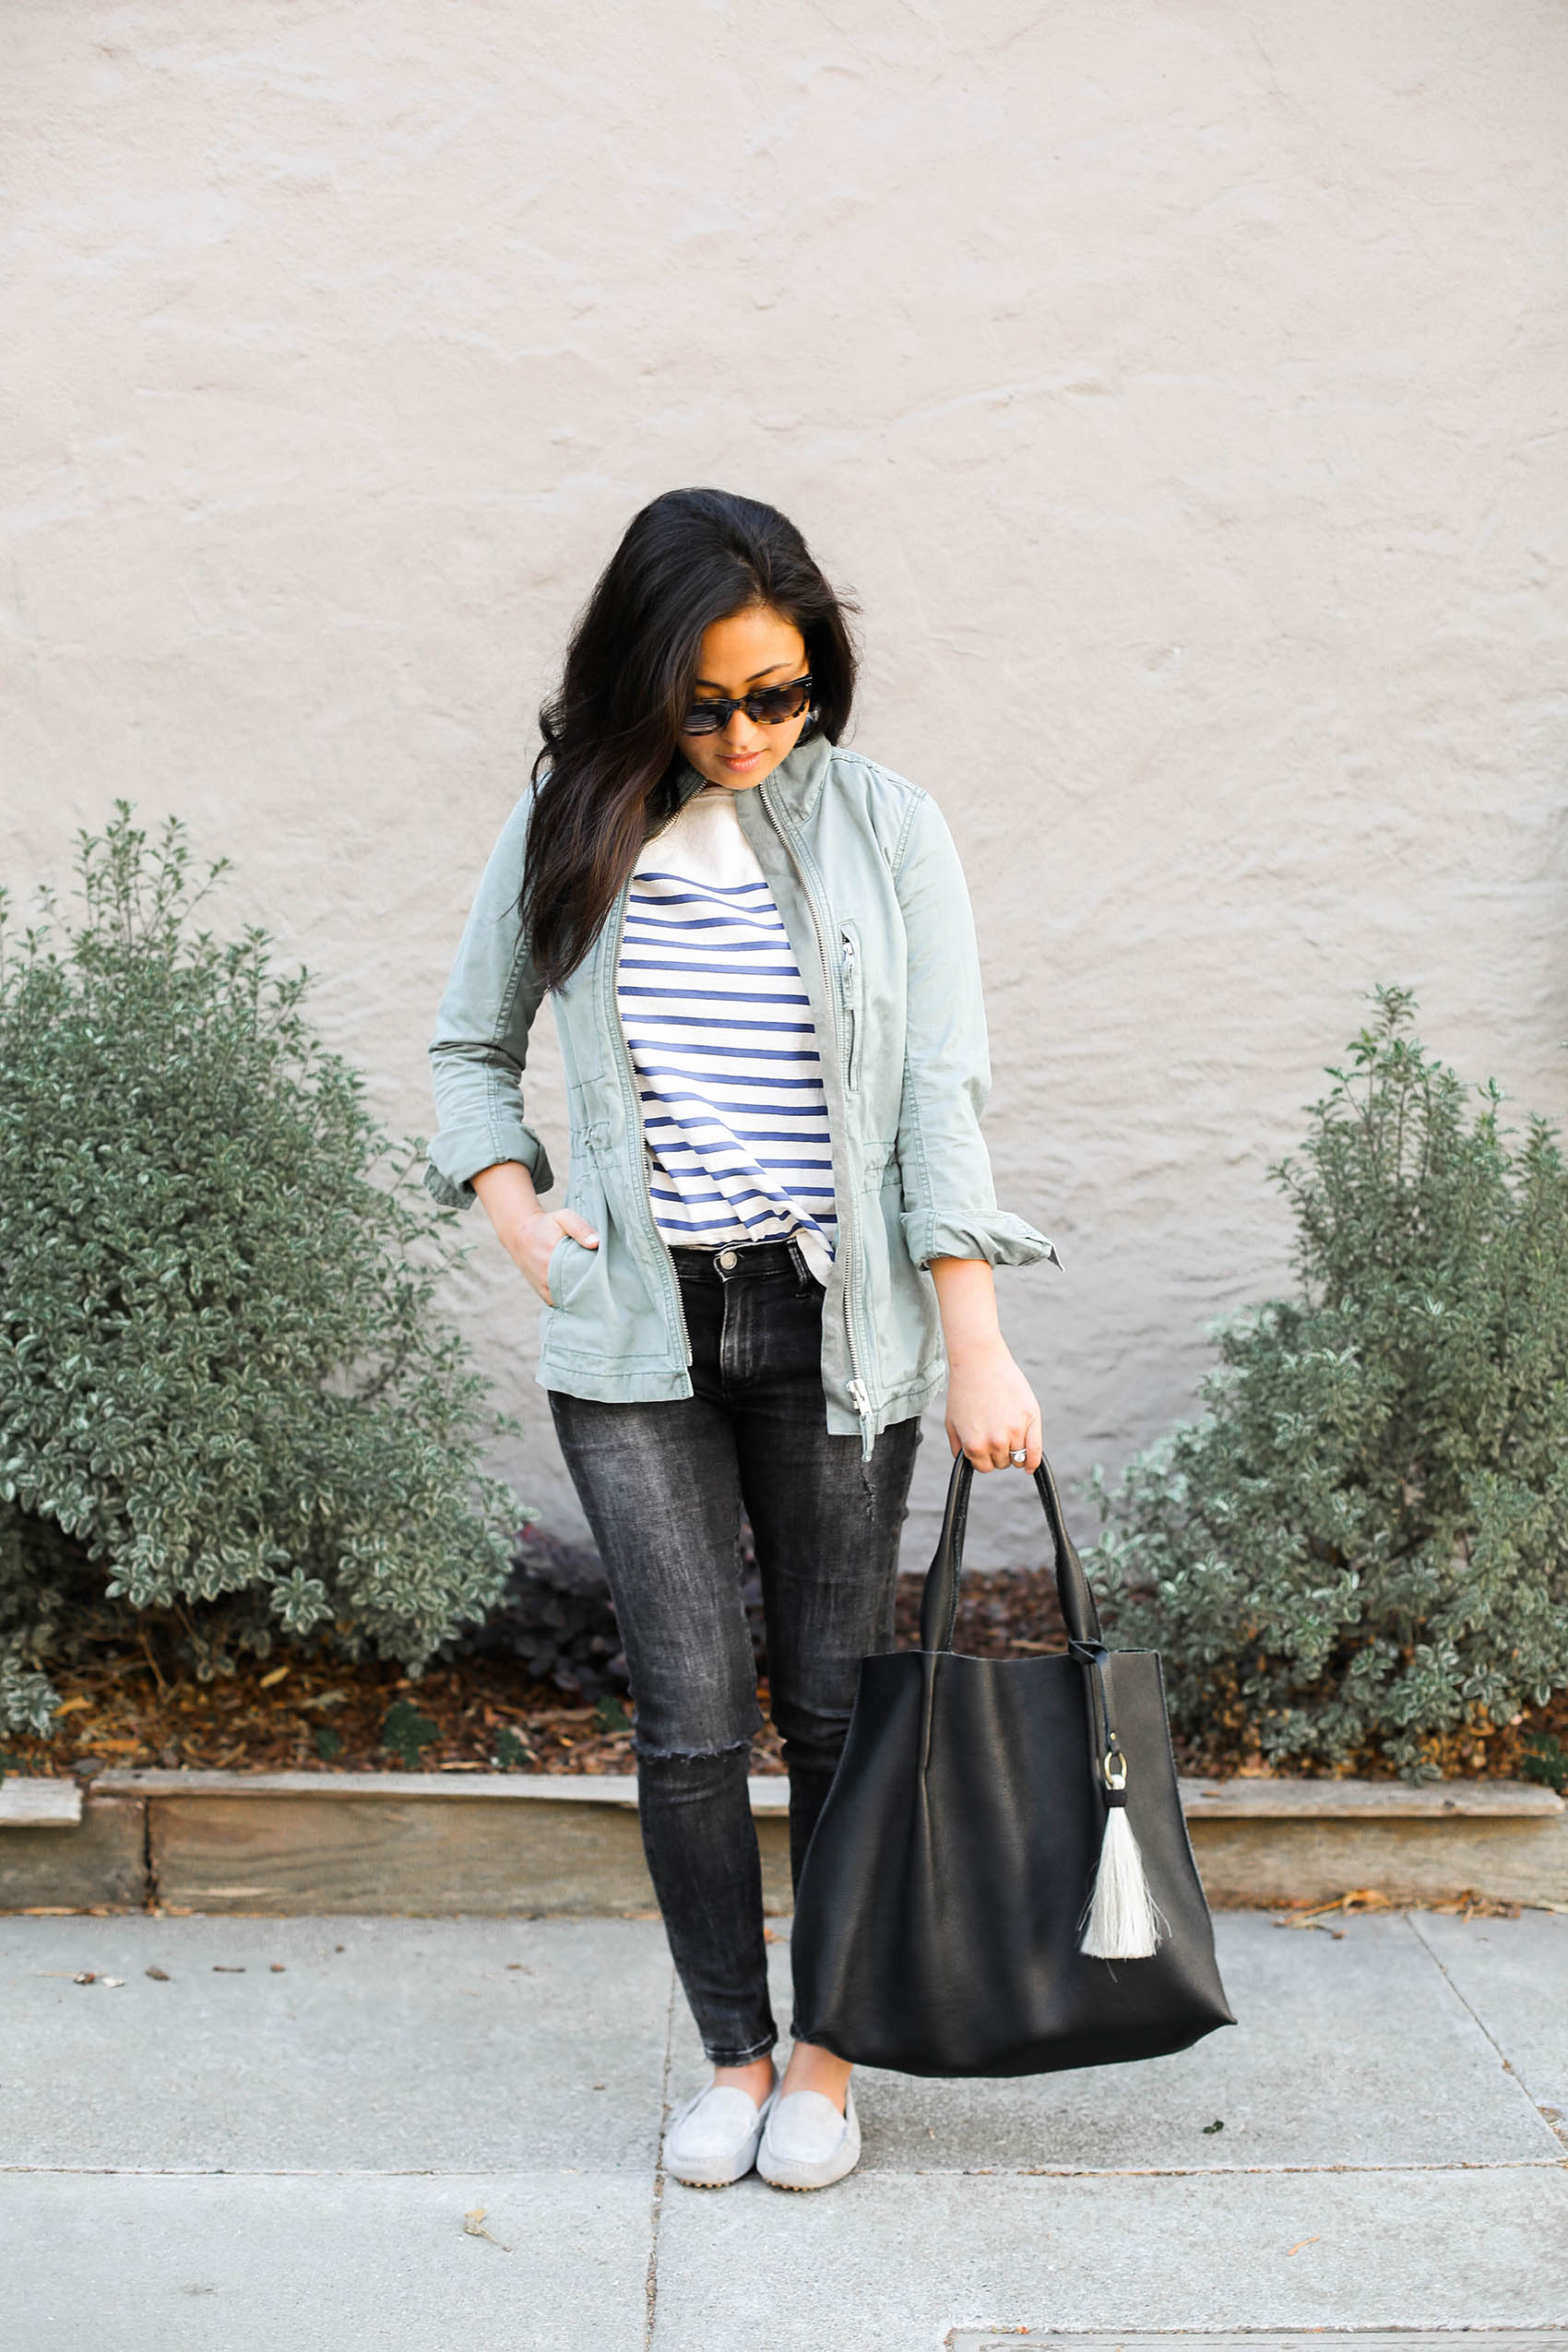 @victoriamstudio weekend uniform | @madewell jacket, @mgemi loafers, @bananarepublic denim, @oliveve tote, @morganesezalory striped tee